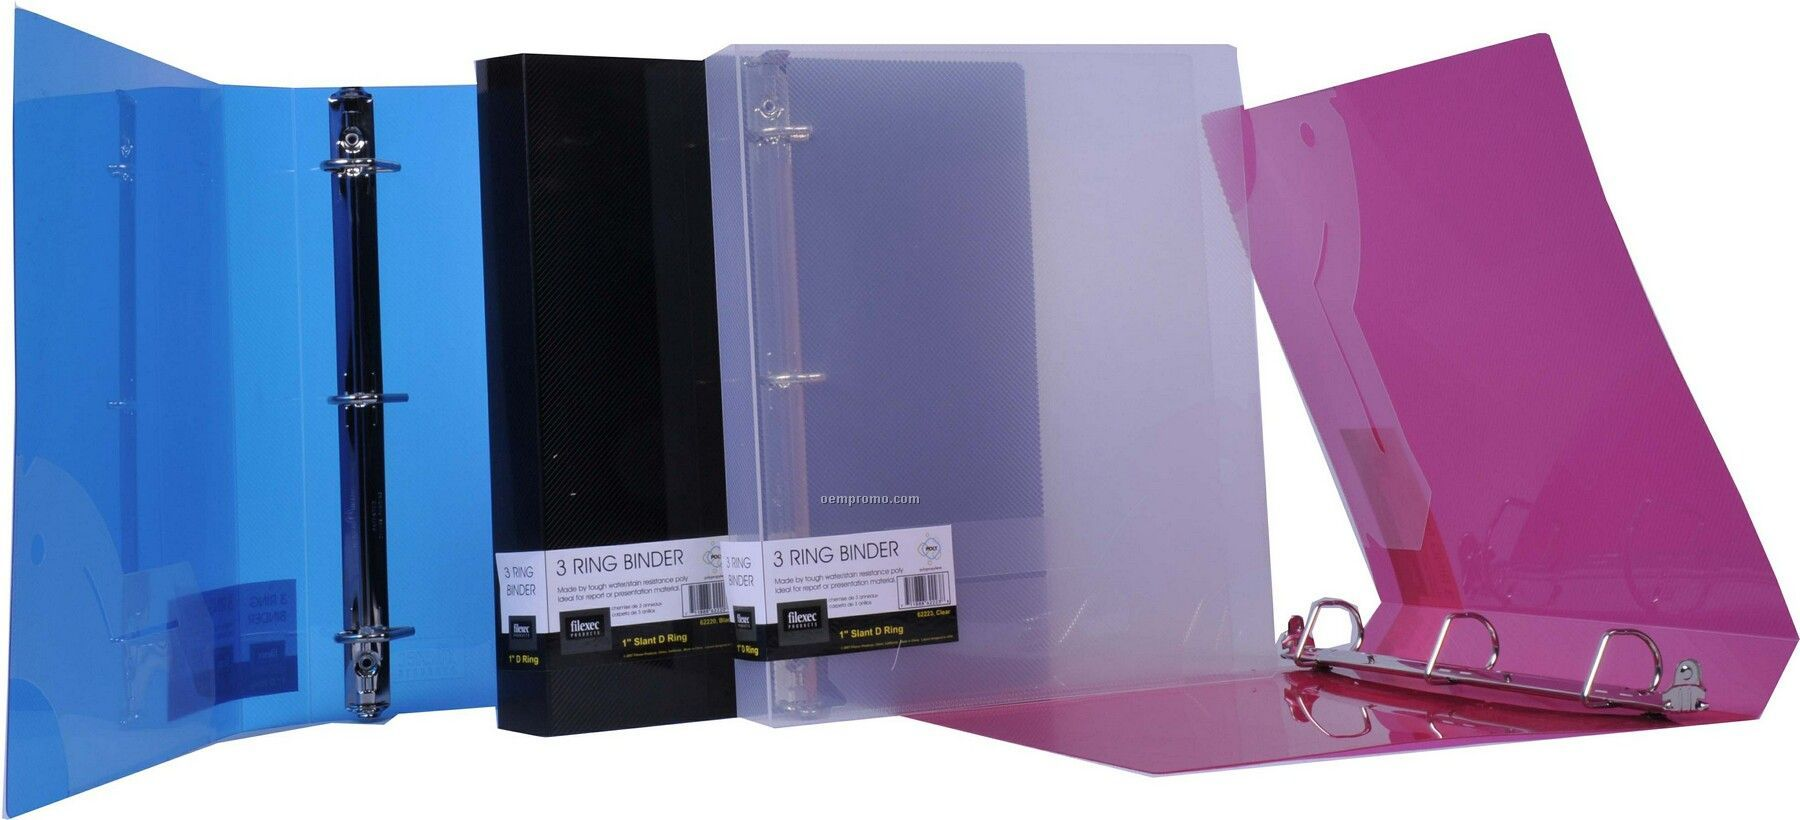 "Translucent Blue D-ring Binder With 1 1/2"" Ring"